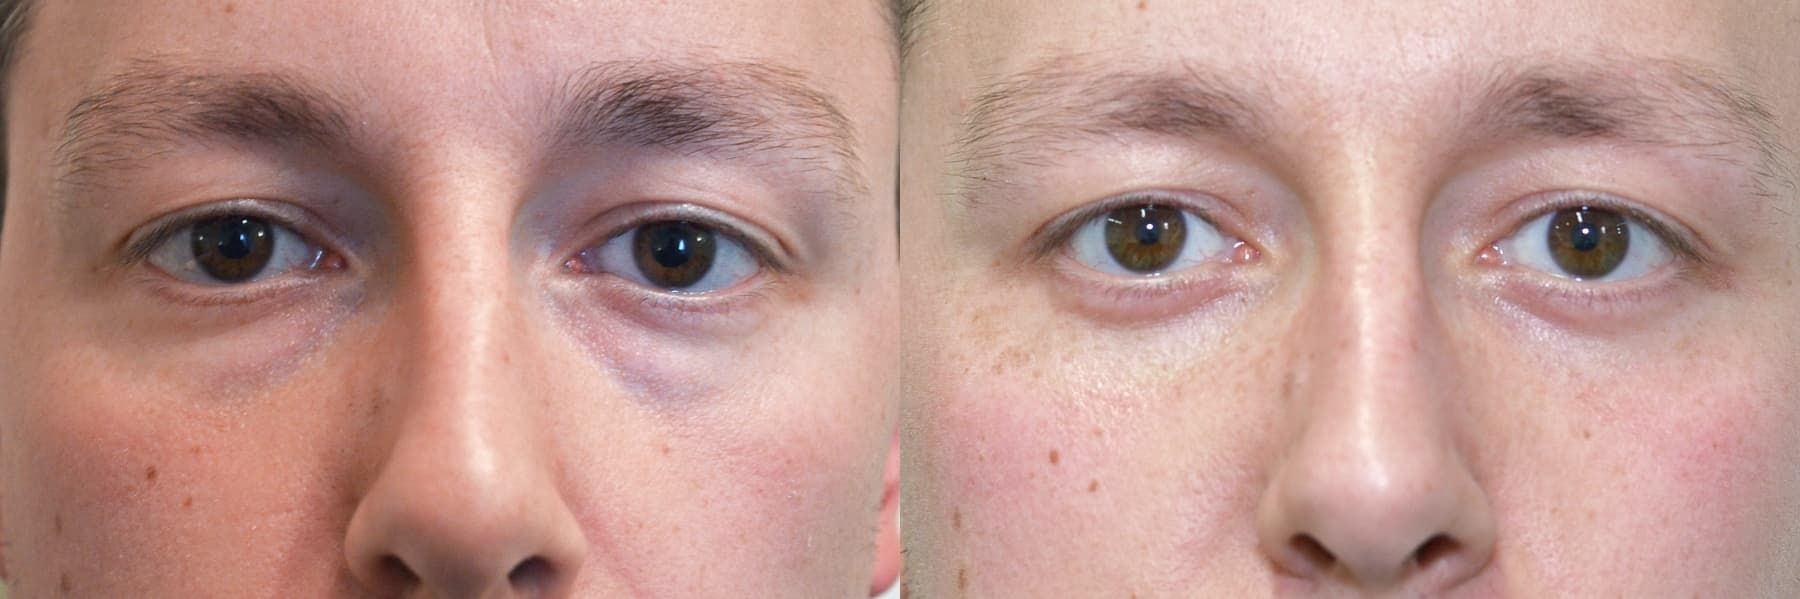 Plastic Surgery Ptosis Before And After photo - 1